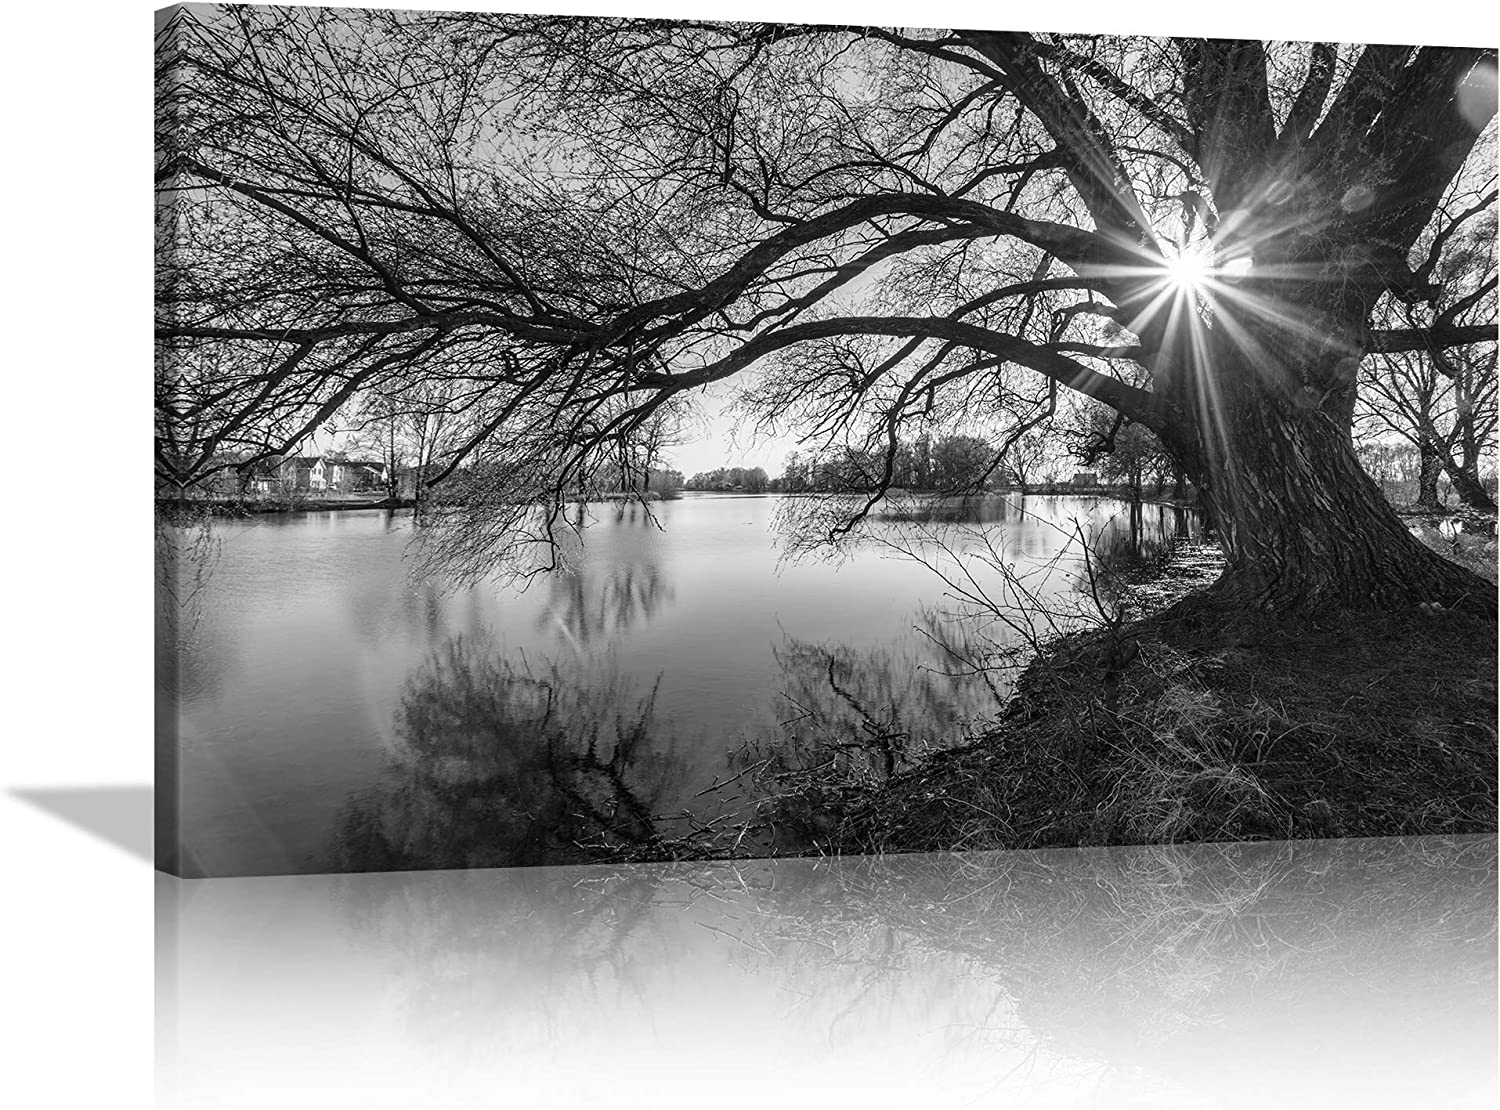 AMEMNY Black and White Tree Wall Decor Silhouette in Sunrise Lake Canves Painting Art Black and White Wall Art Landscape Pictures Print Artwork Decor for Bedroom Livingroom Framed Ready to Hang